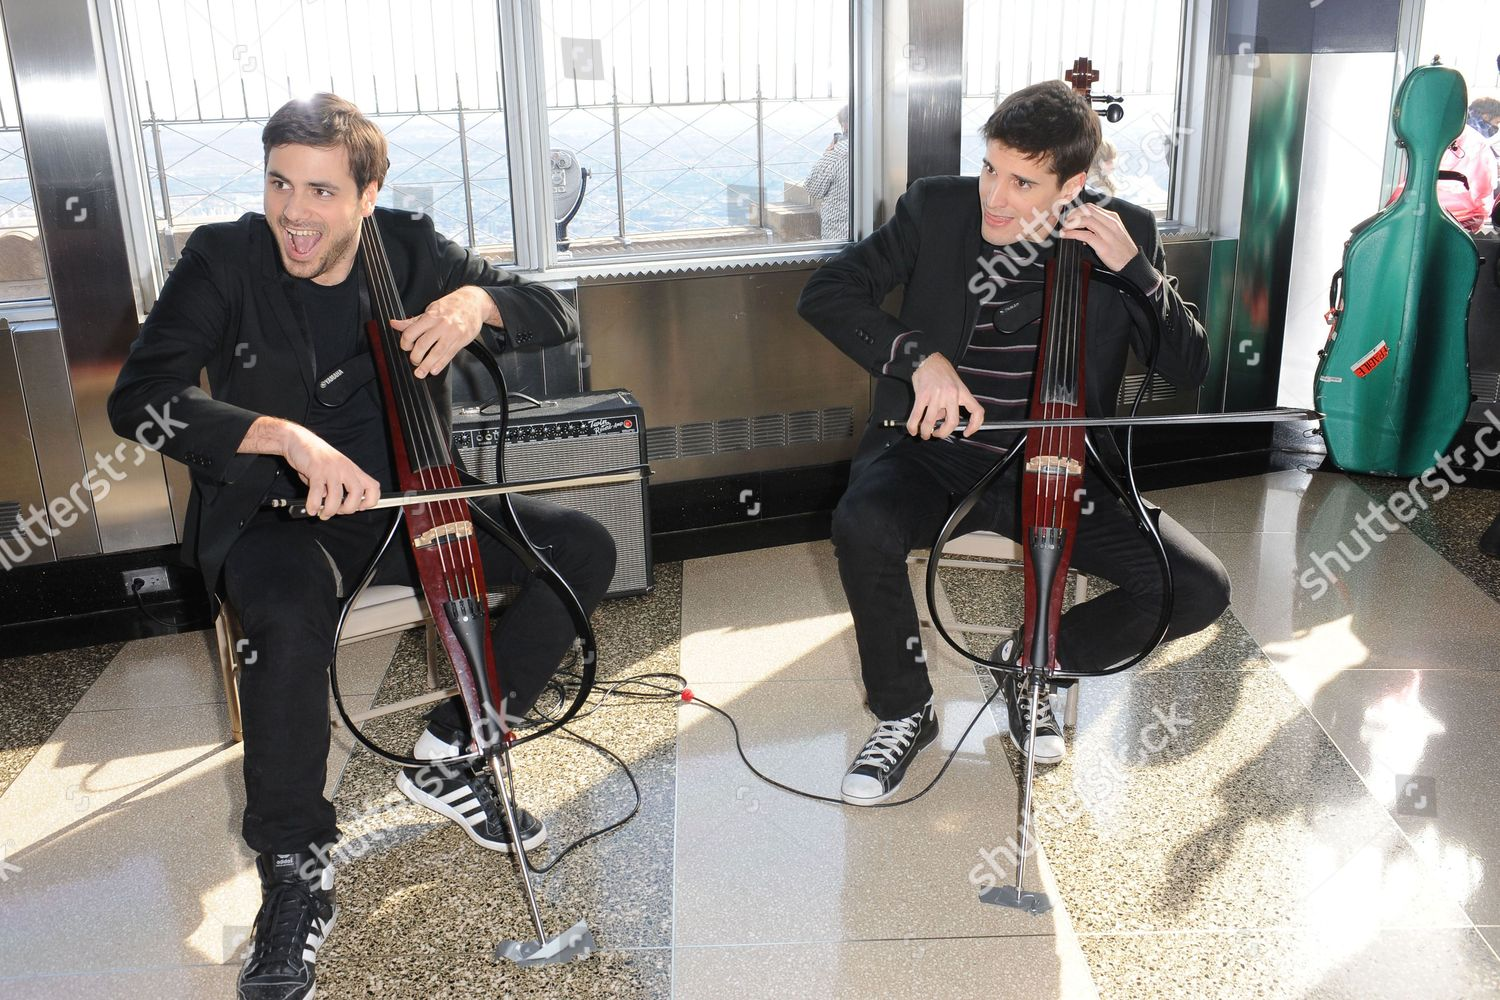 How Tall Is Stjepan Hauser